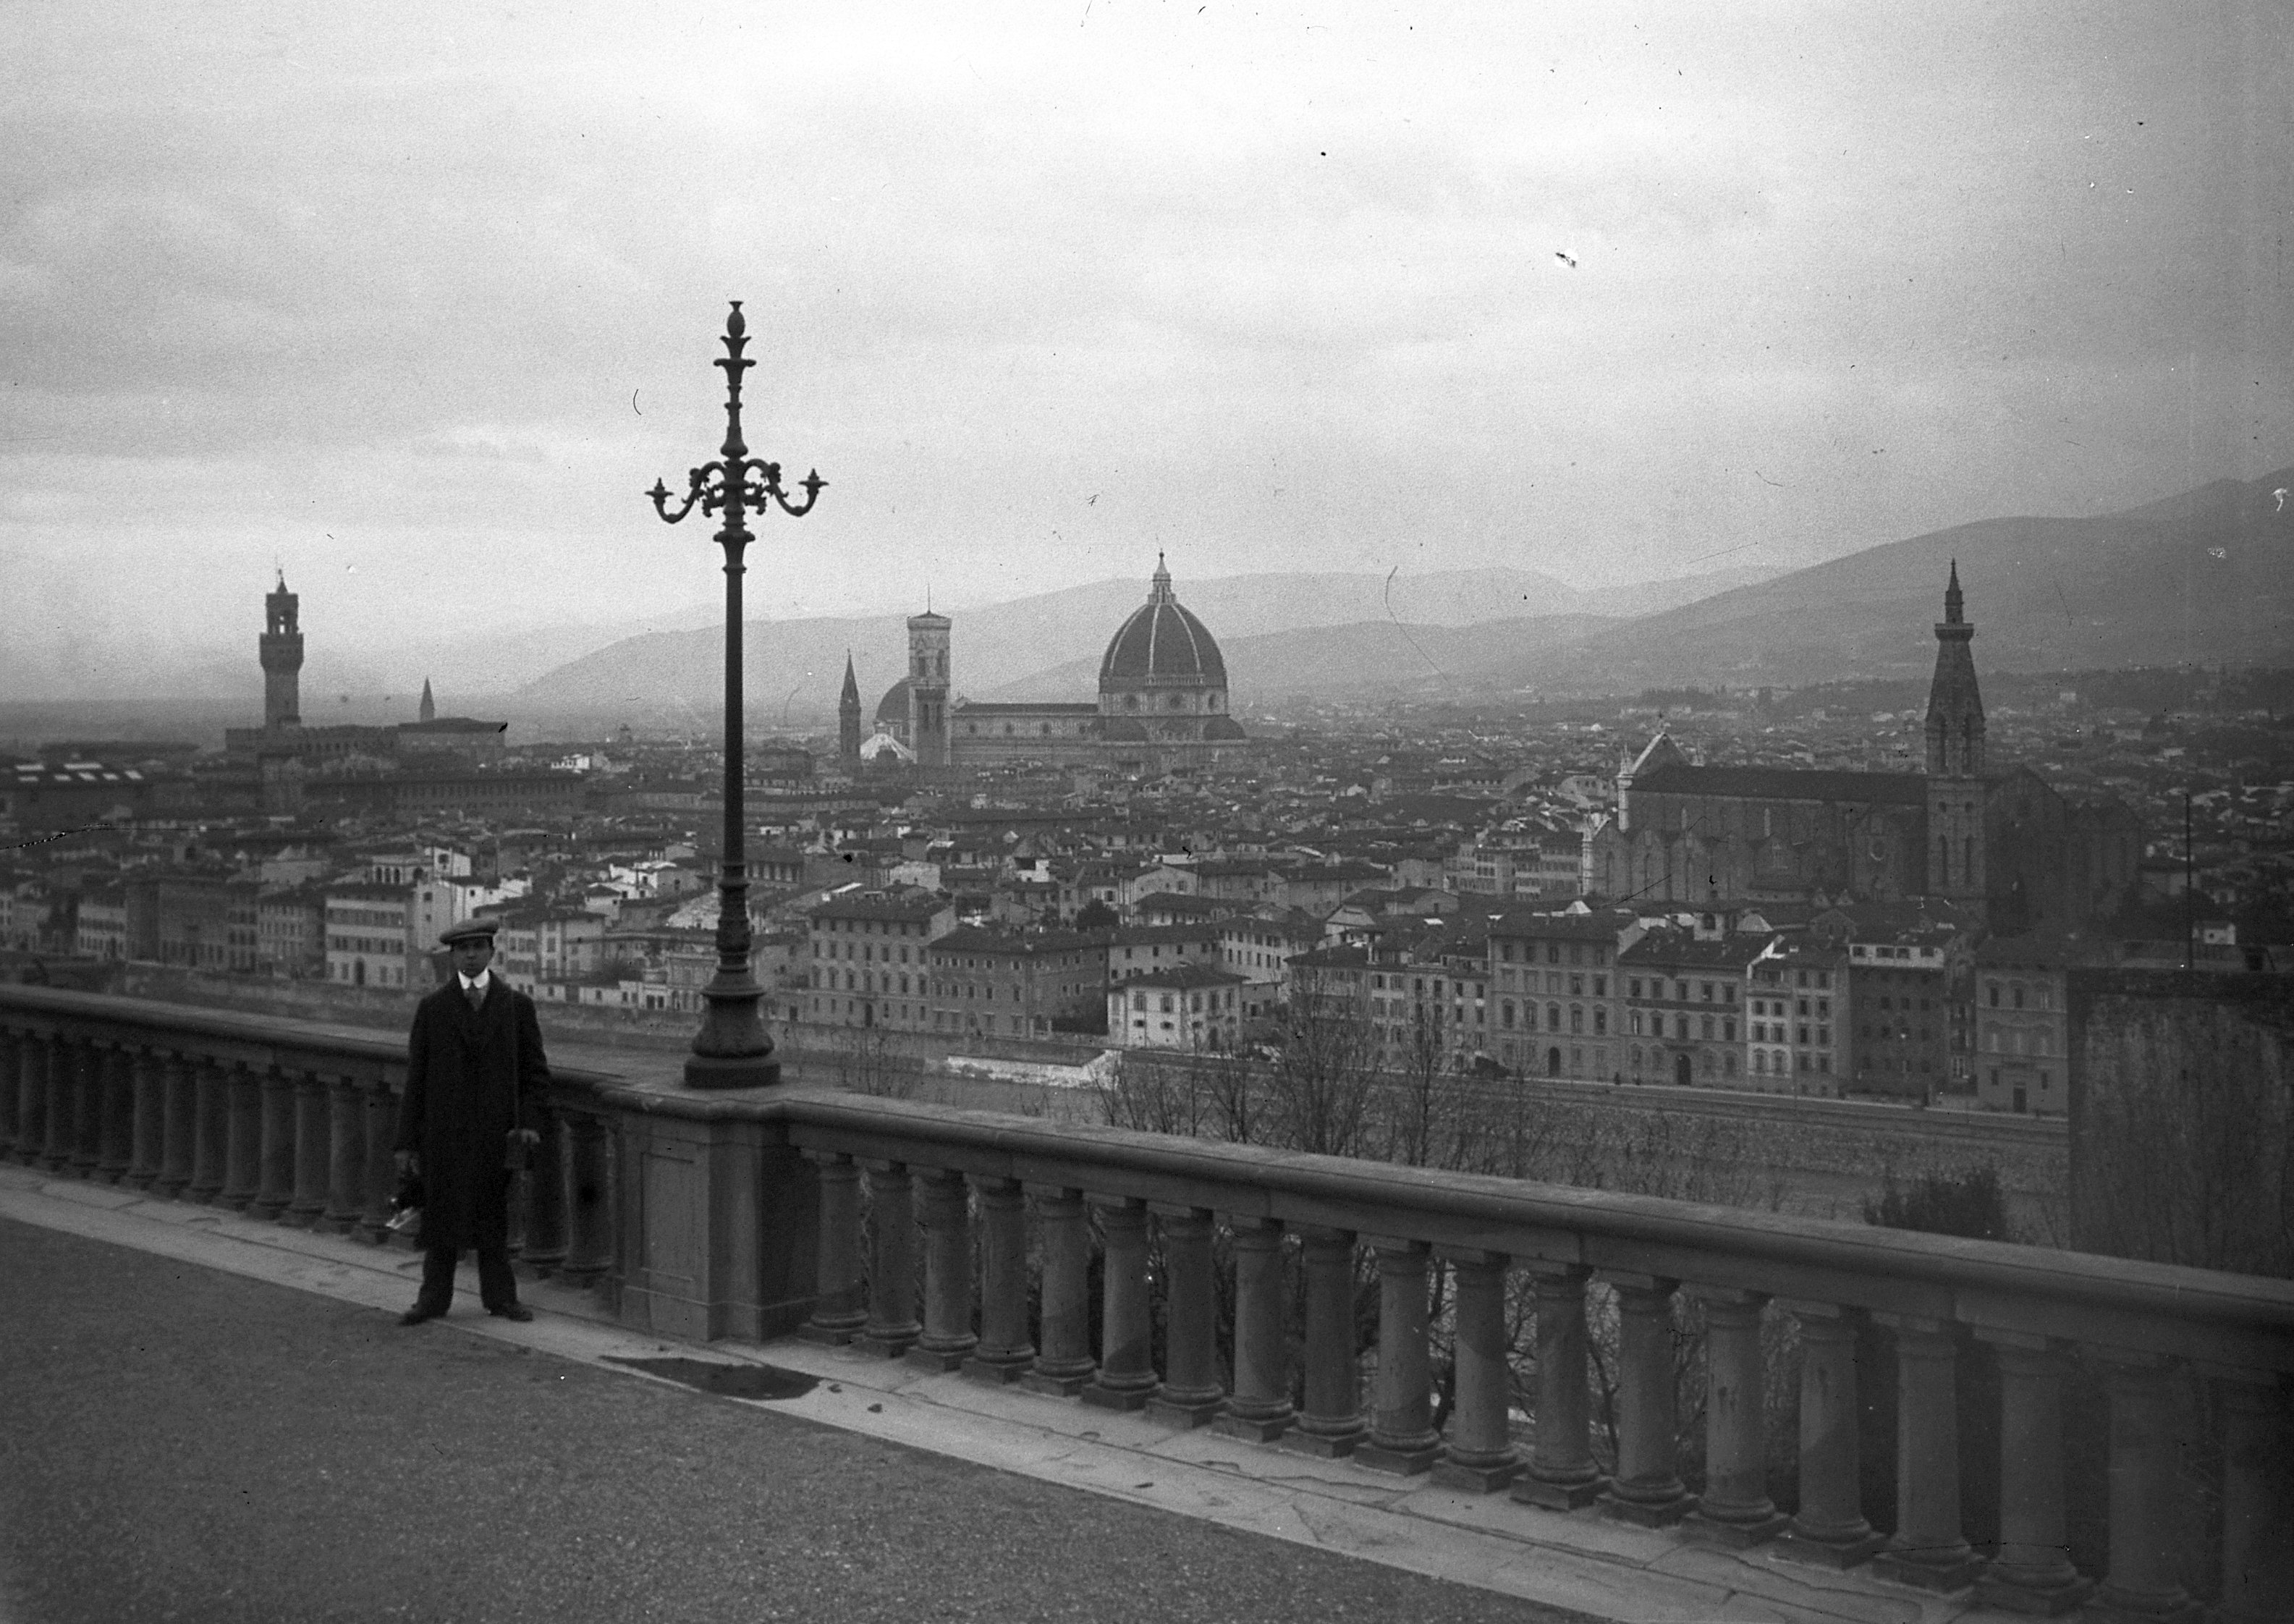 Piazzale Michelangelo. The Palazzo Vecchio is on the left, the Duomo and the Campanile in the middle, and the Santa Croce complex on the right